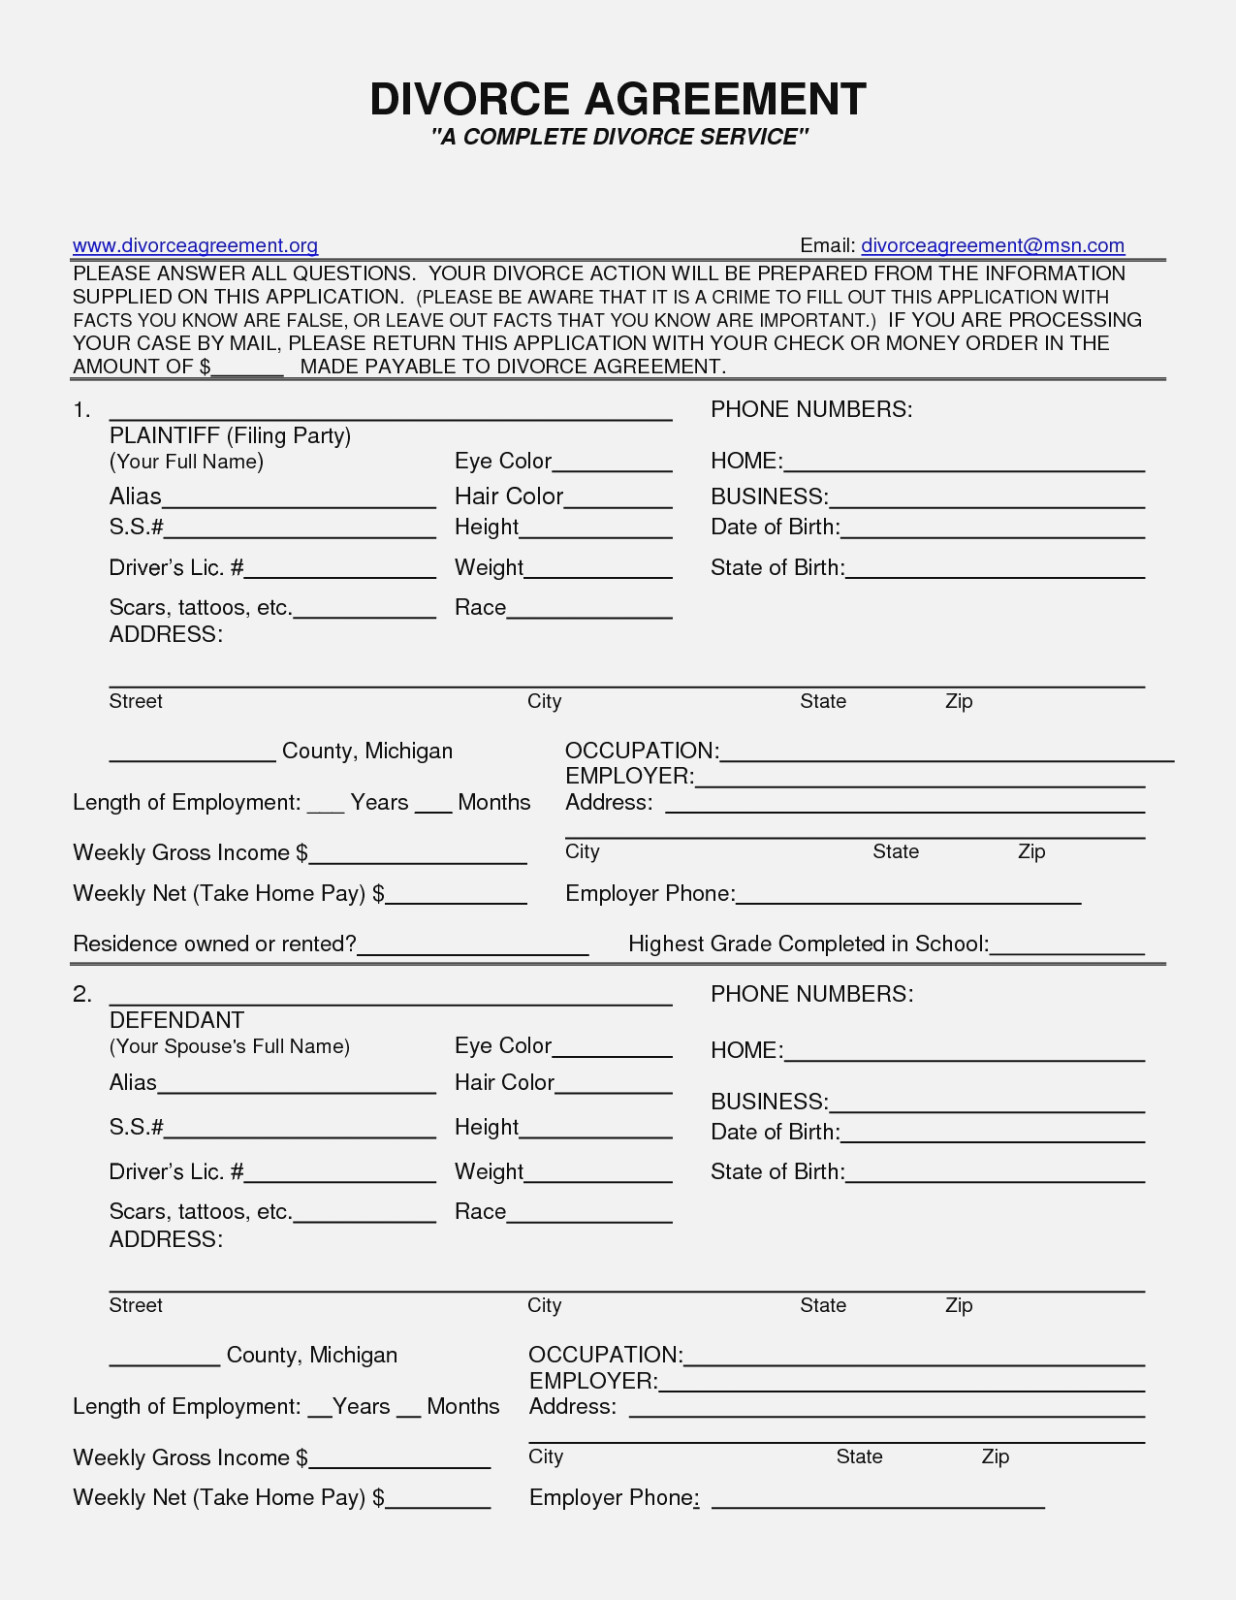 Sample Divorce Agreement Nj Luxury Form Free Printable Divorce - Free Printable Nj Divorce Forms